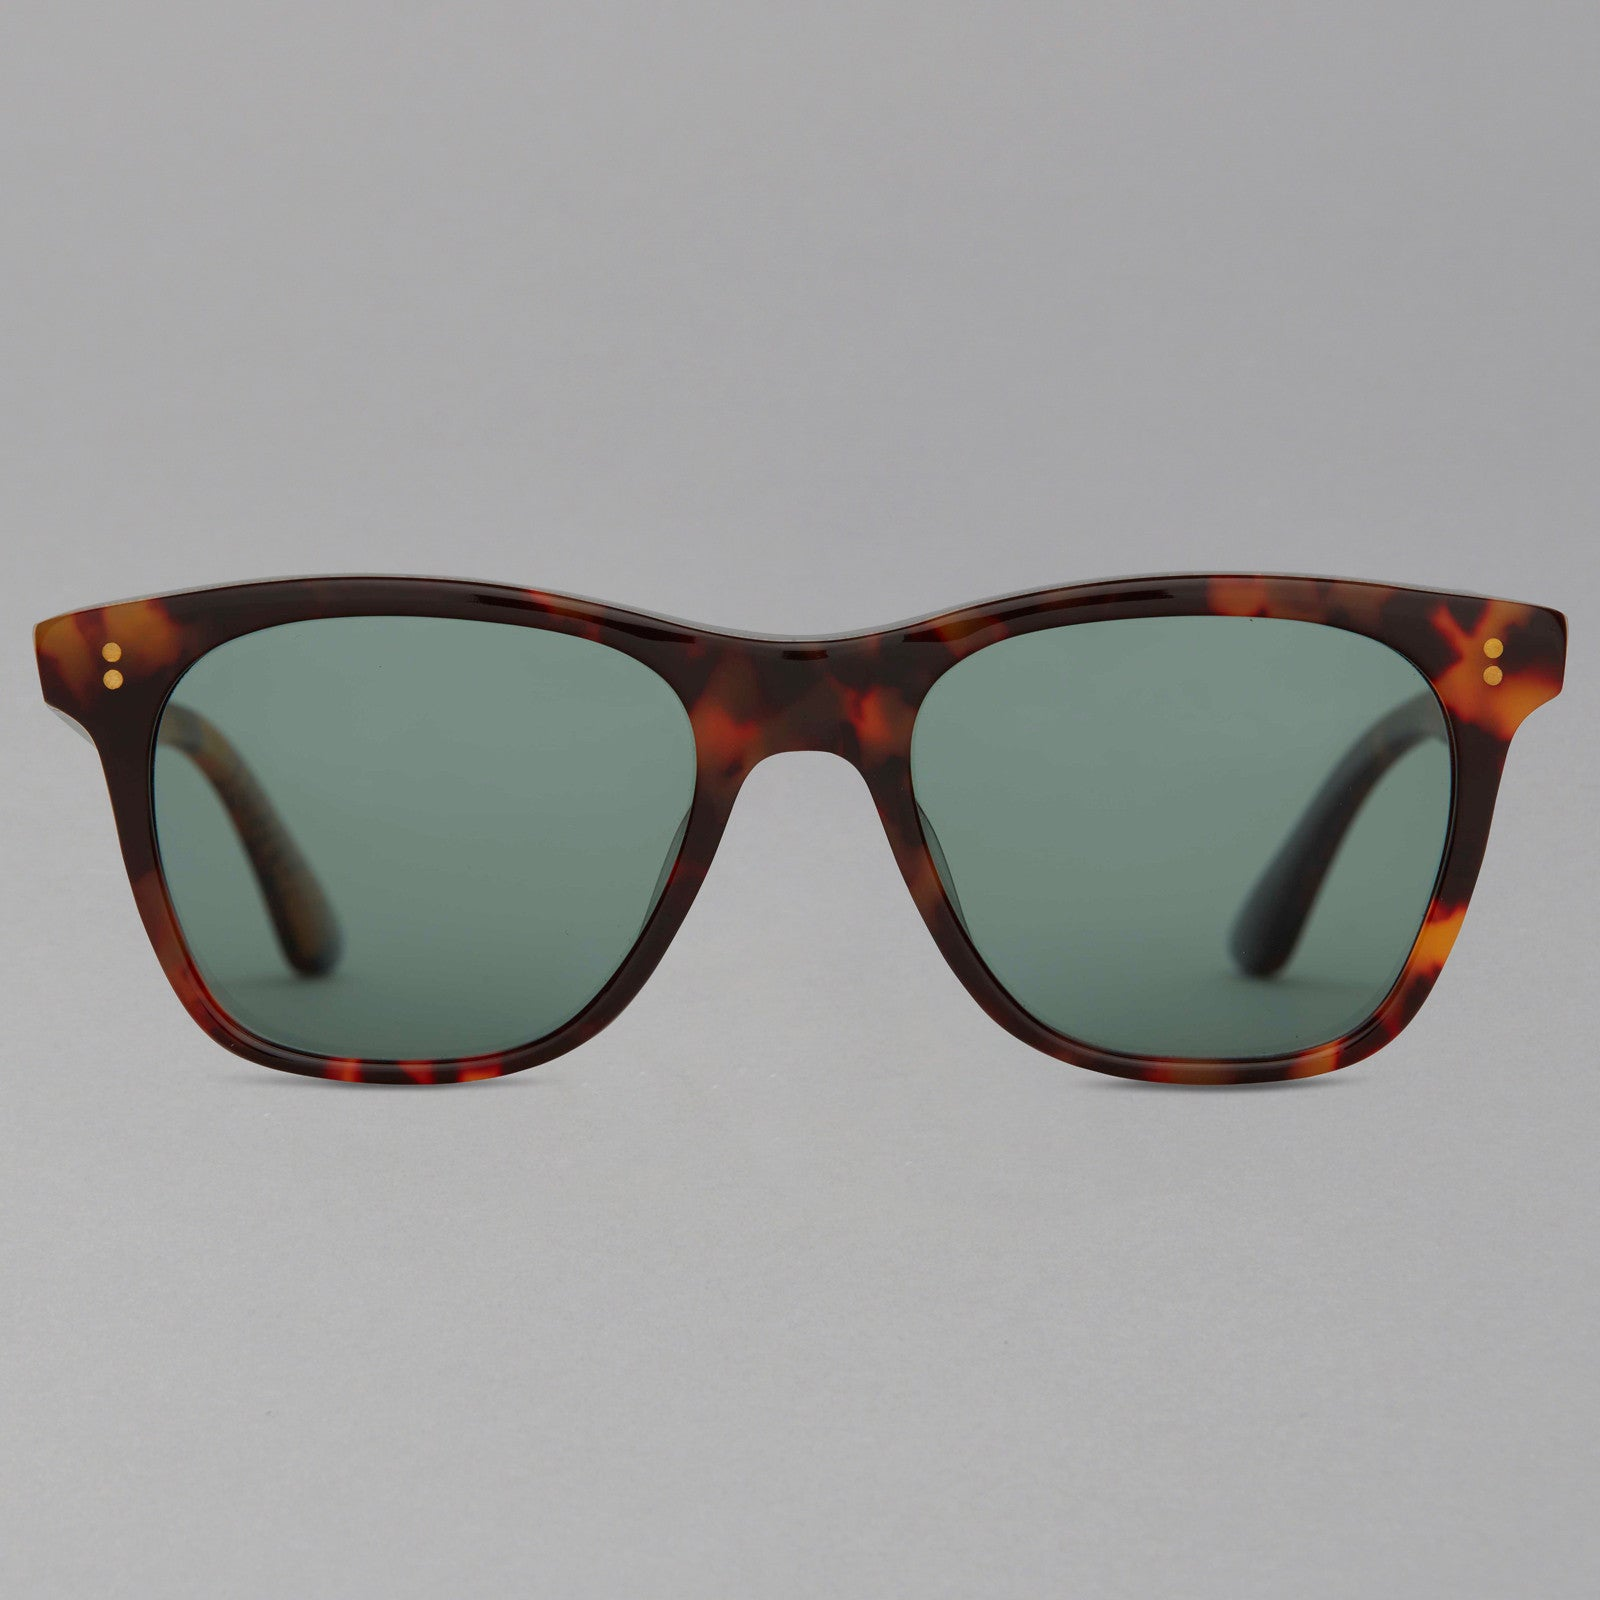 TOMS - TOMS x The Hill-Side Fitzpatrick Sunglasses, Tortoiseshell Acetate -